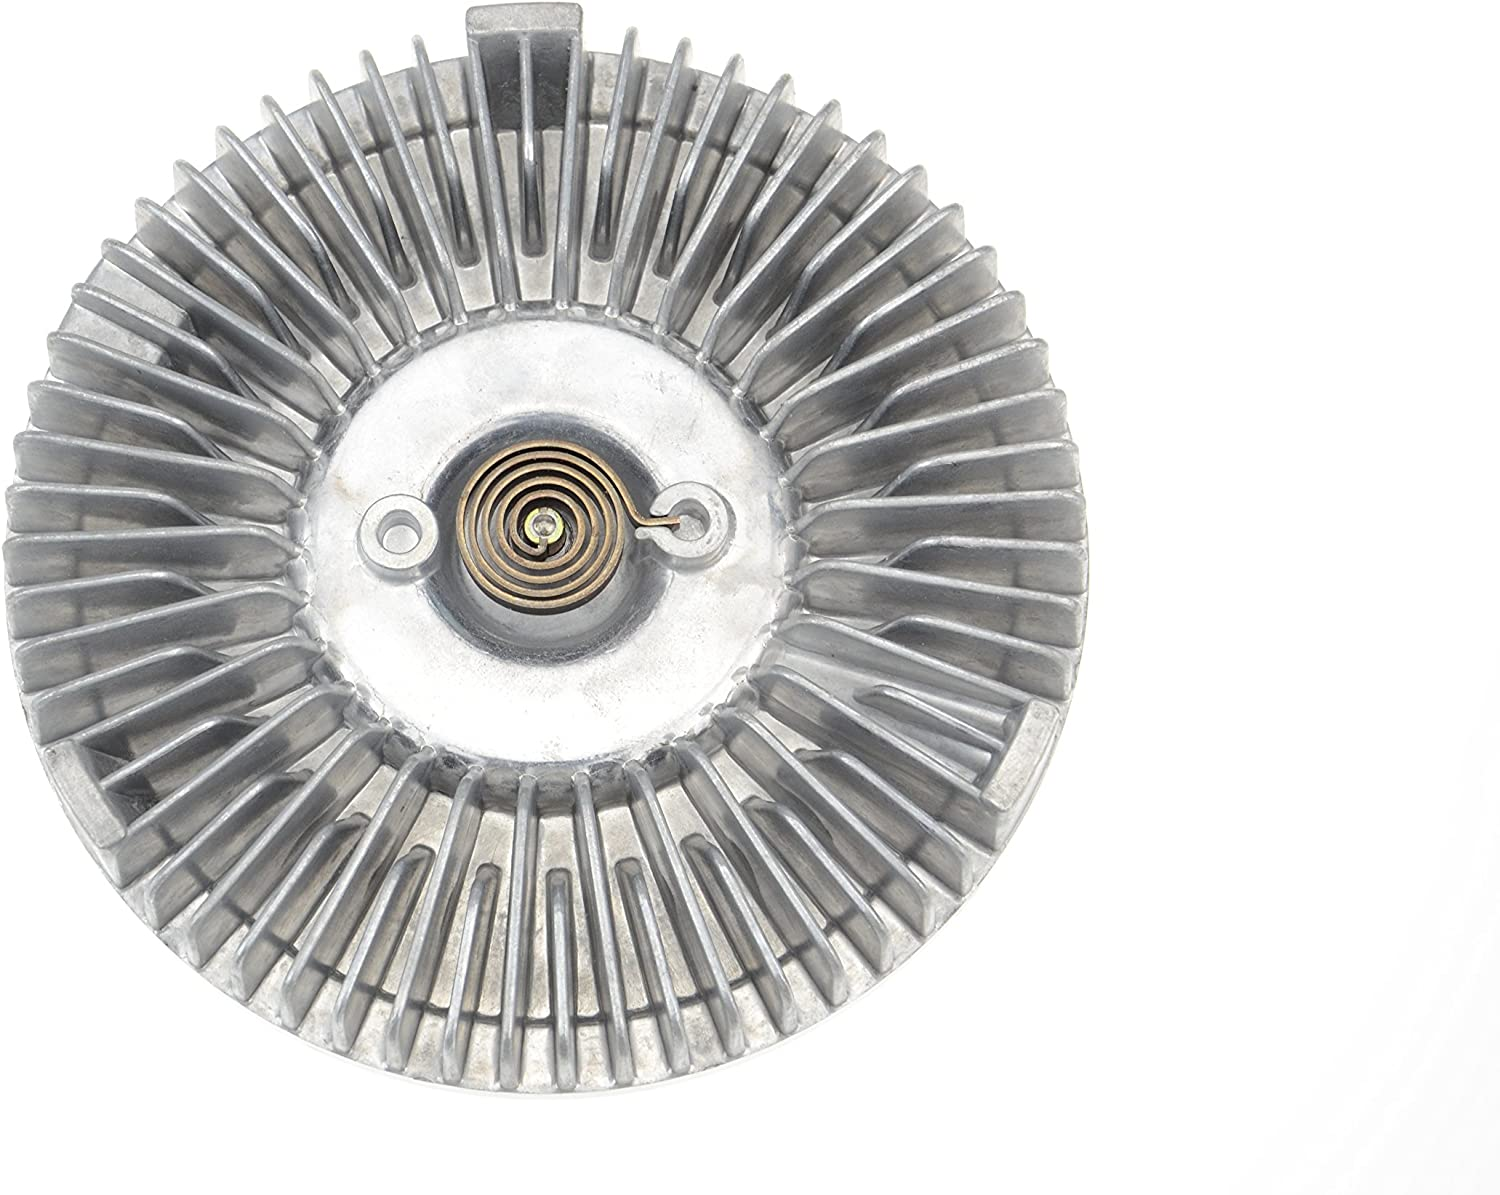 ECCPP Engine Cooling Fan Clutch Replacement fit for 2002-2004 Ford Ranger 2.3L